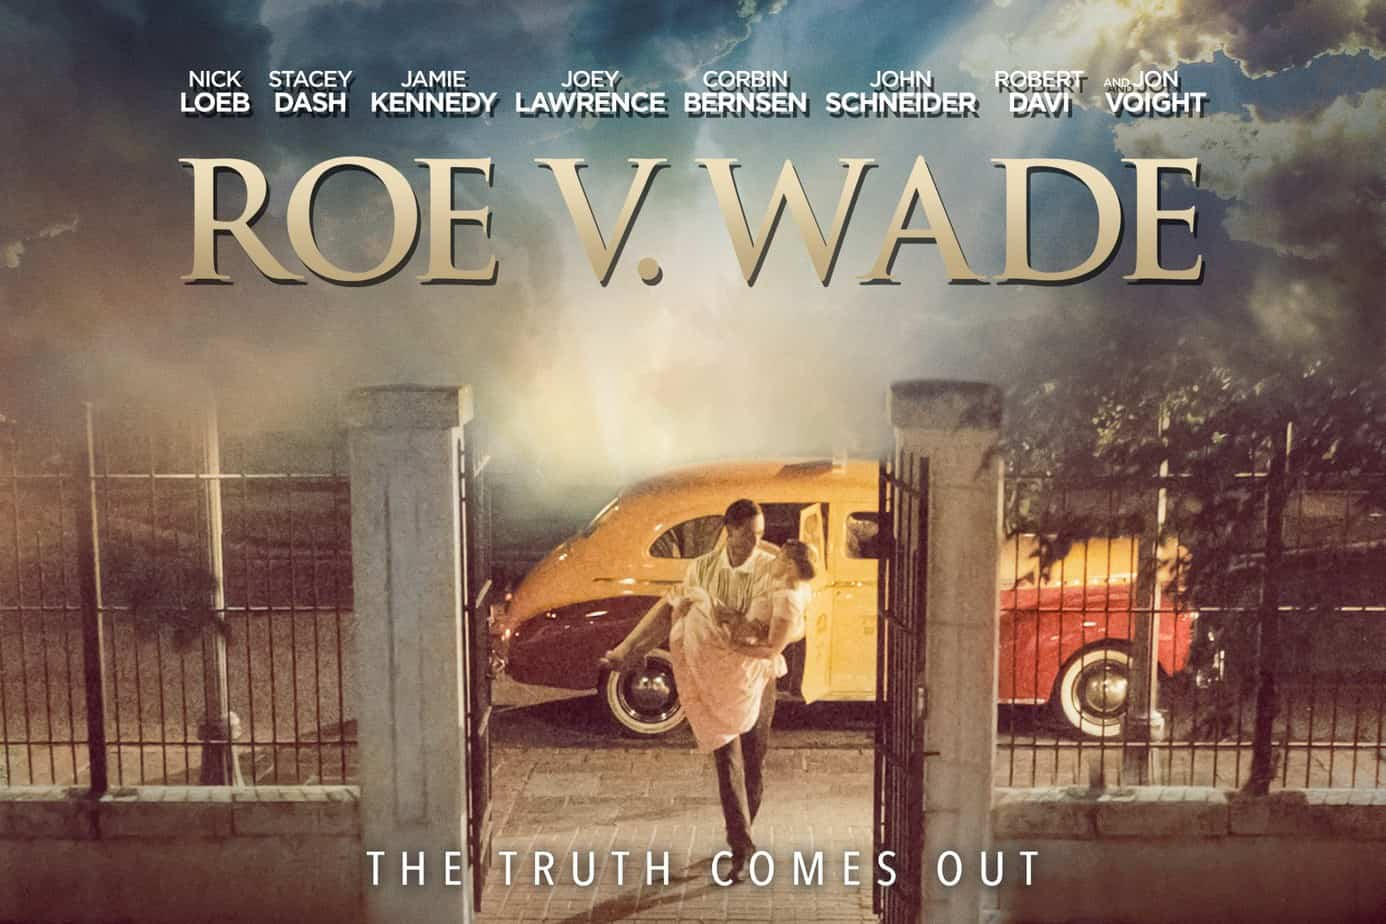 Roe V Wade movie – Discover the truth behind the SCOTUS case that changed America